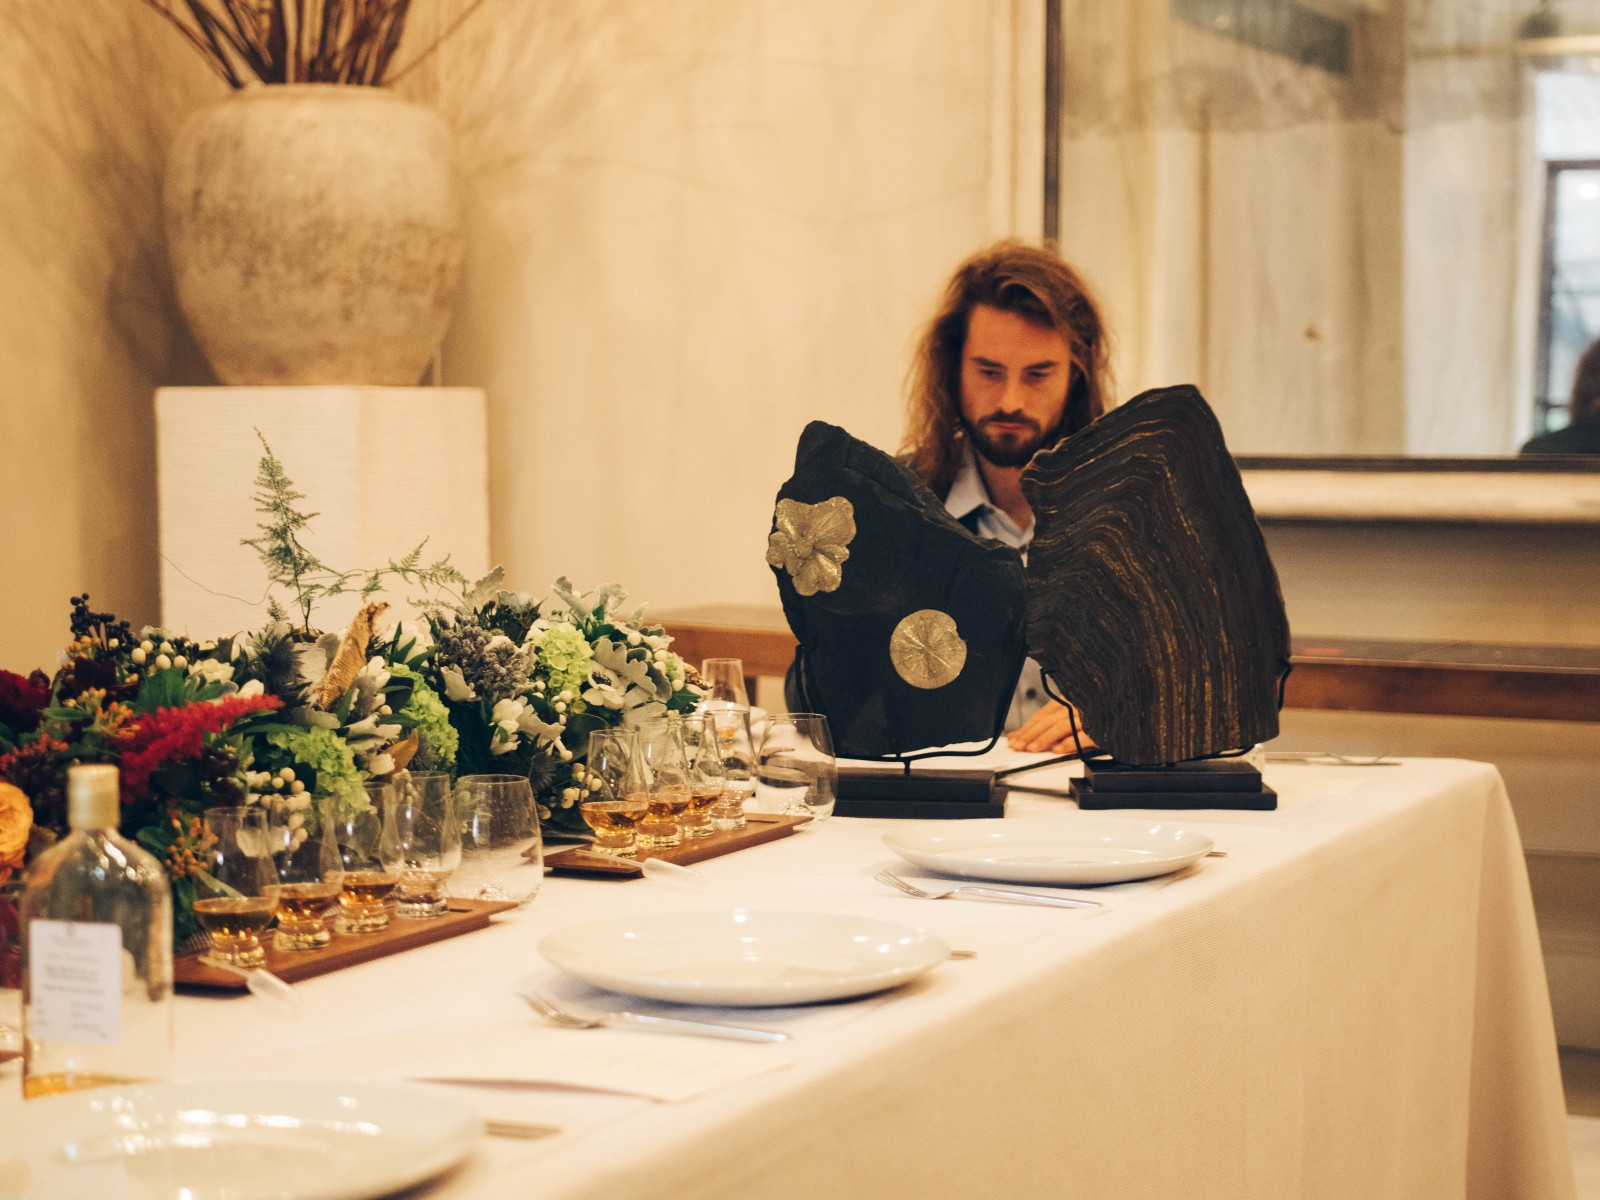 20-million-year-old fossils and Barnabé Fillion at the Royal Salute Whisky pairing dinner (Royal Salute Whisky)